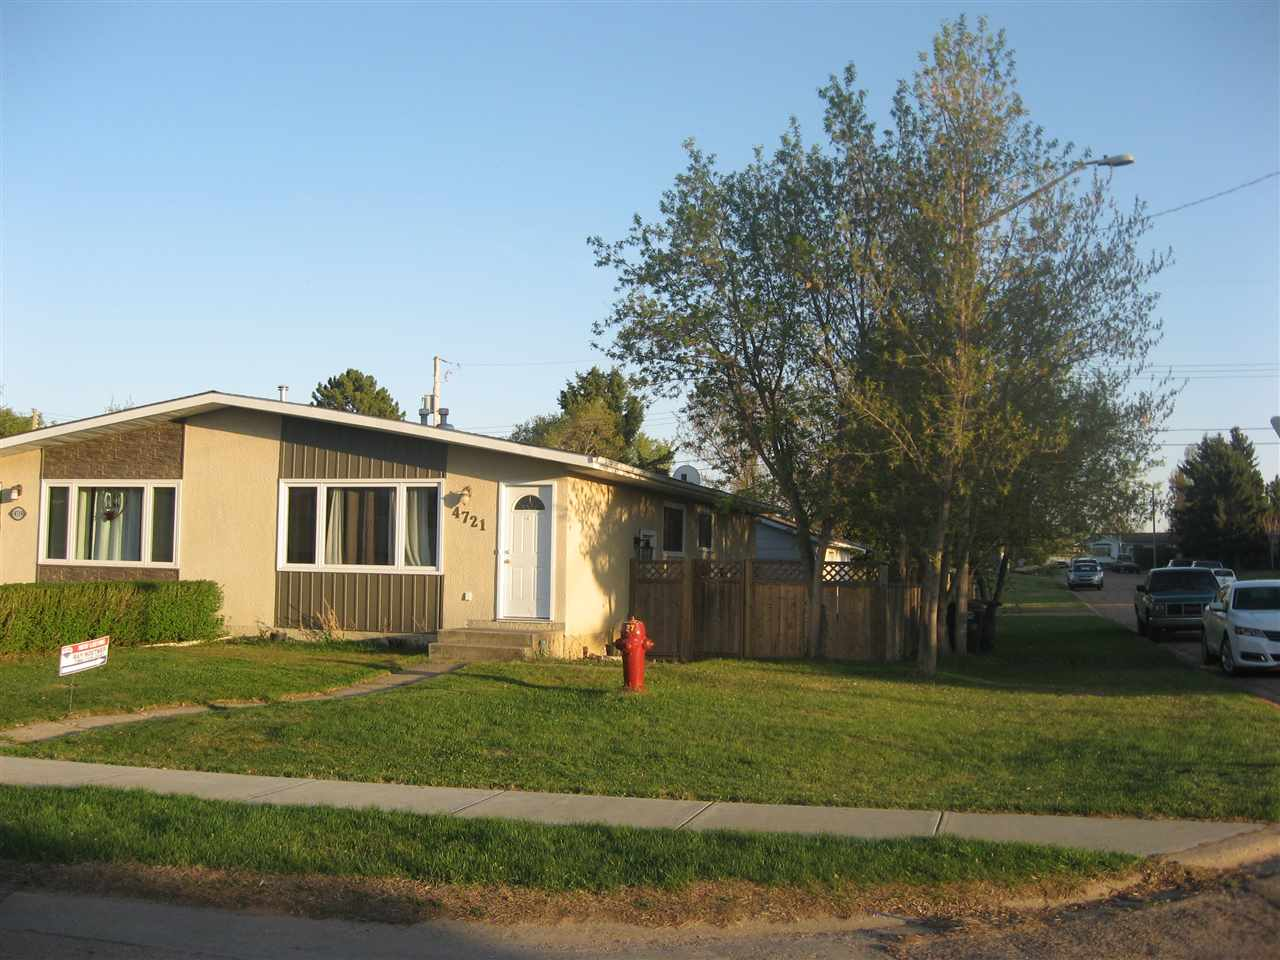 Perfect starter home with loads of upgrades done including shingles, windows, entry doors, wiring, plumbing, new kitchen, tile floors and paint. The main floor has large open concept living room, dining area, kitchen, 3 good sized bedrooms and 4 pce. bath. The basement is developed with large family room, bedroom, den, laundry room and 3pce. bath. Comes with all newer appliances and window coverings. The large fenced yard has a double garage and backs onto a park.